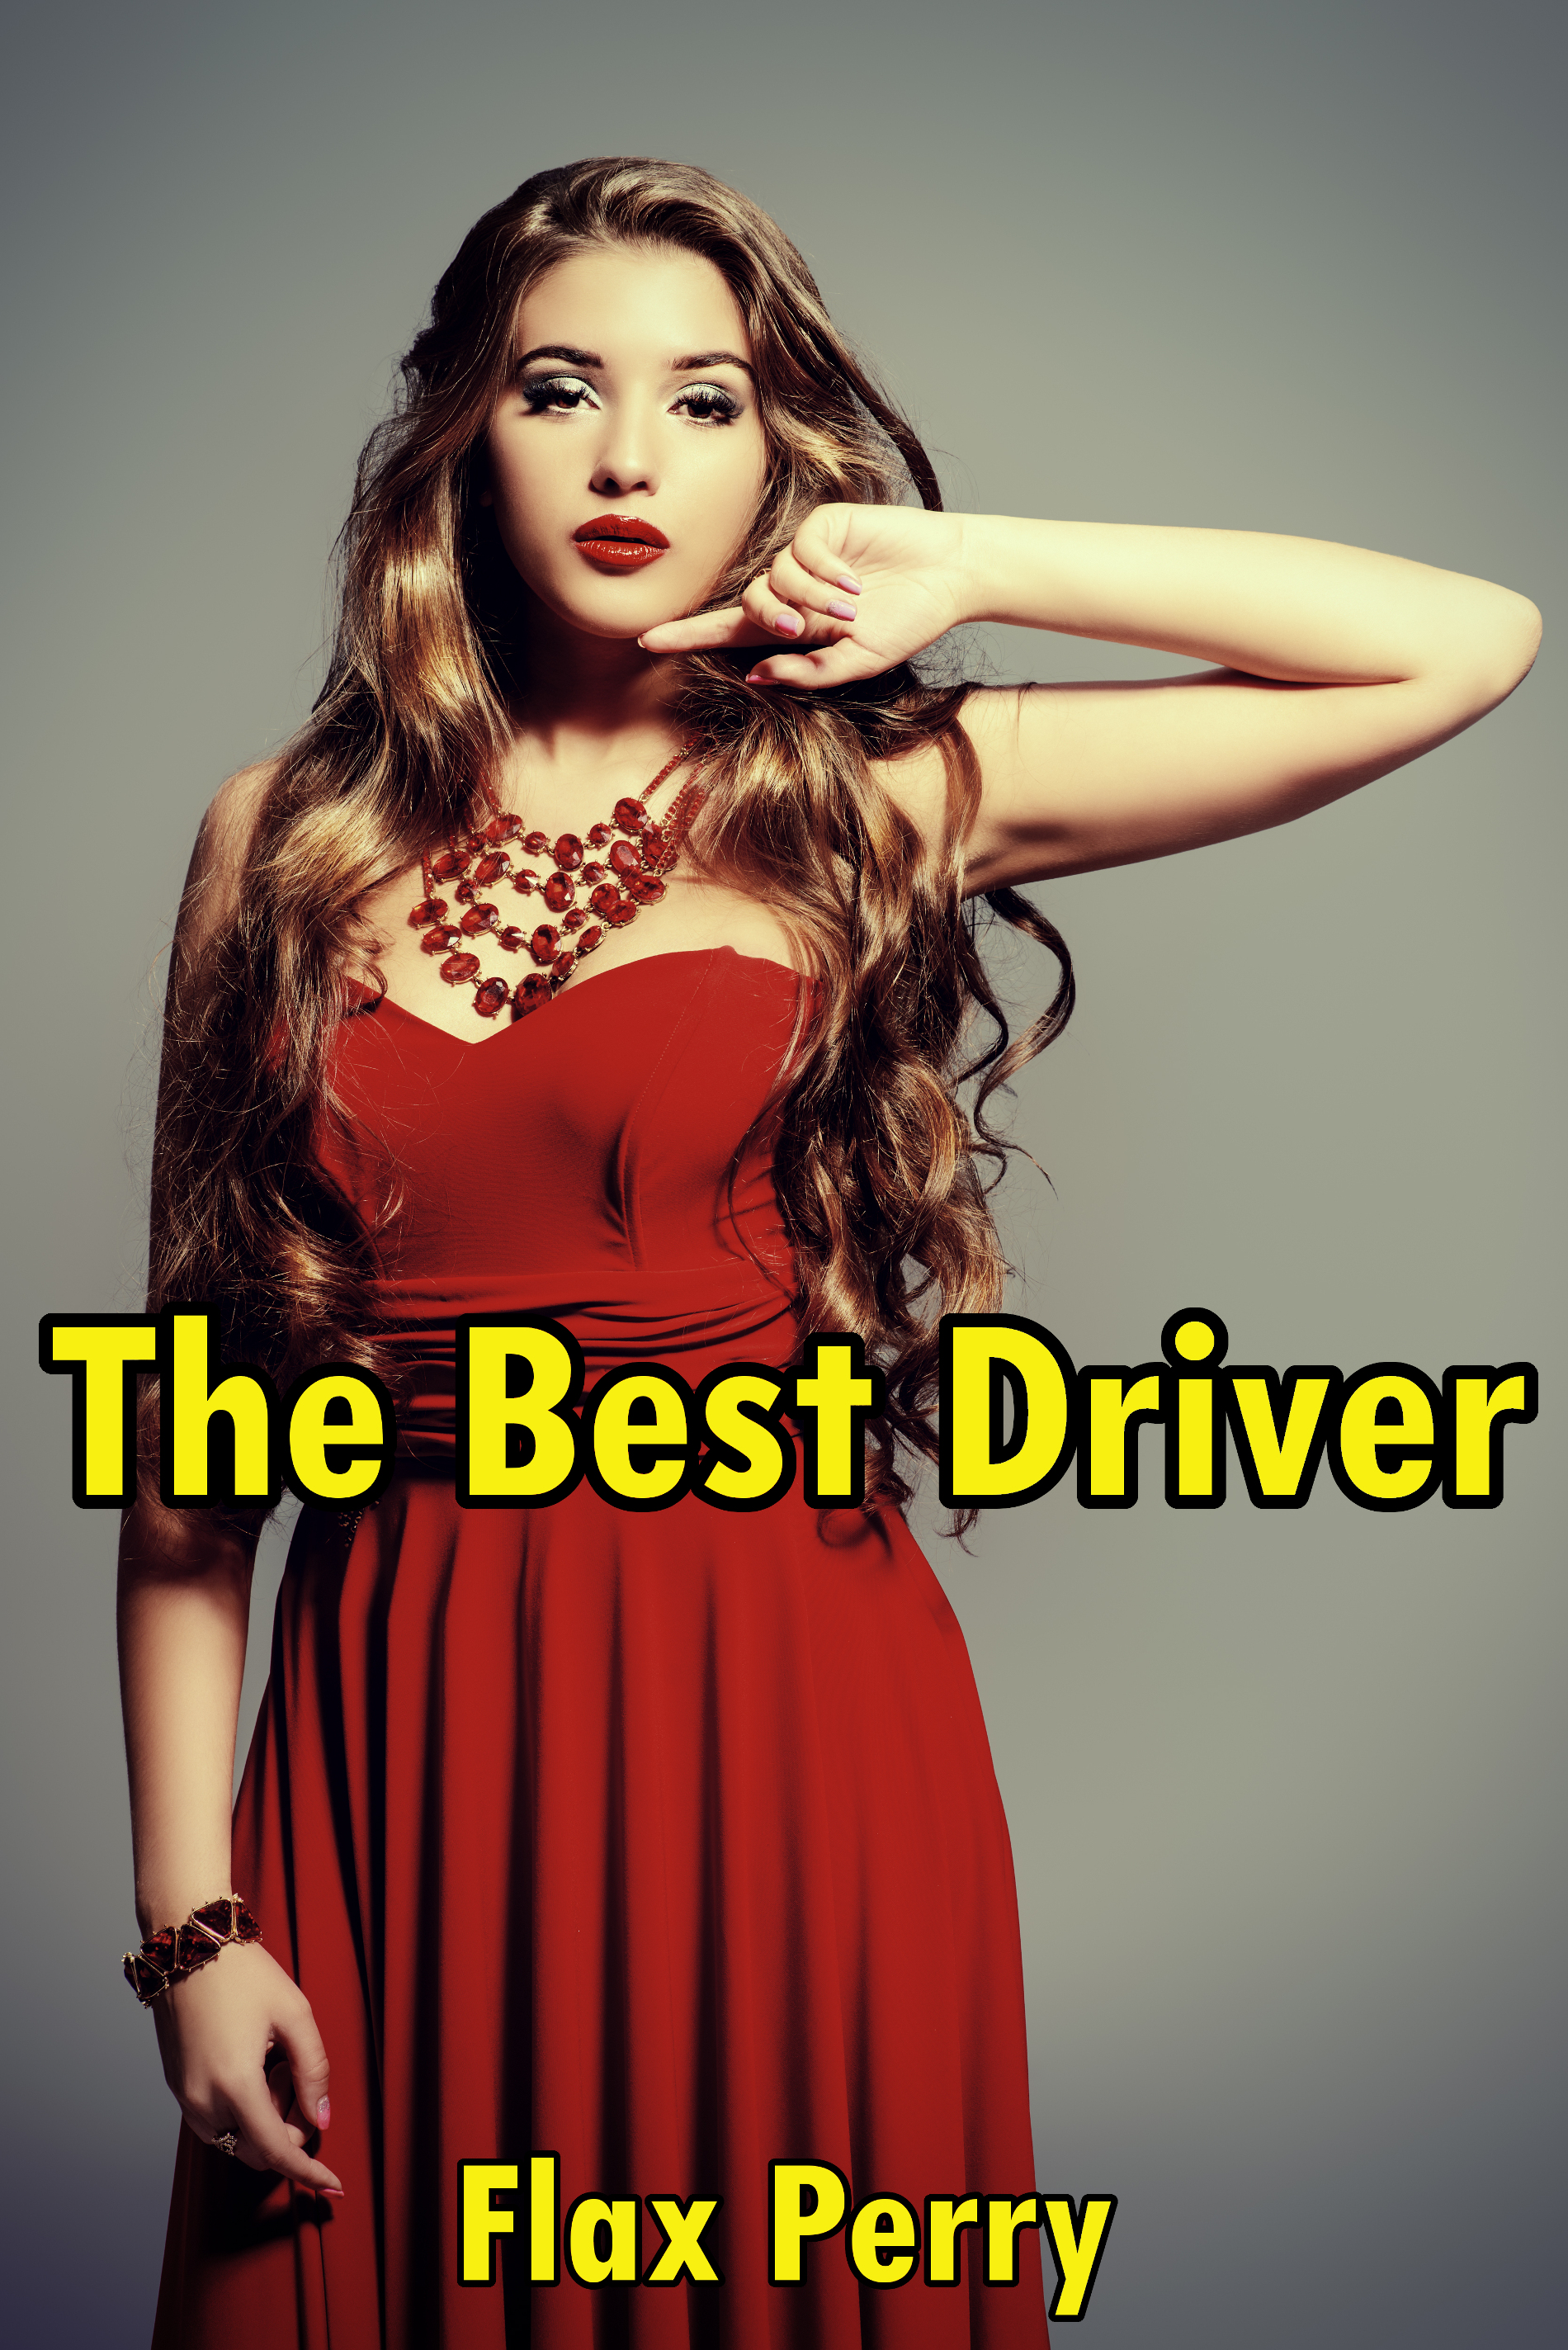 The Best Driver